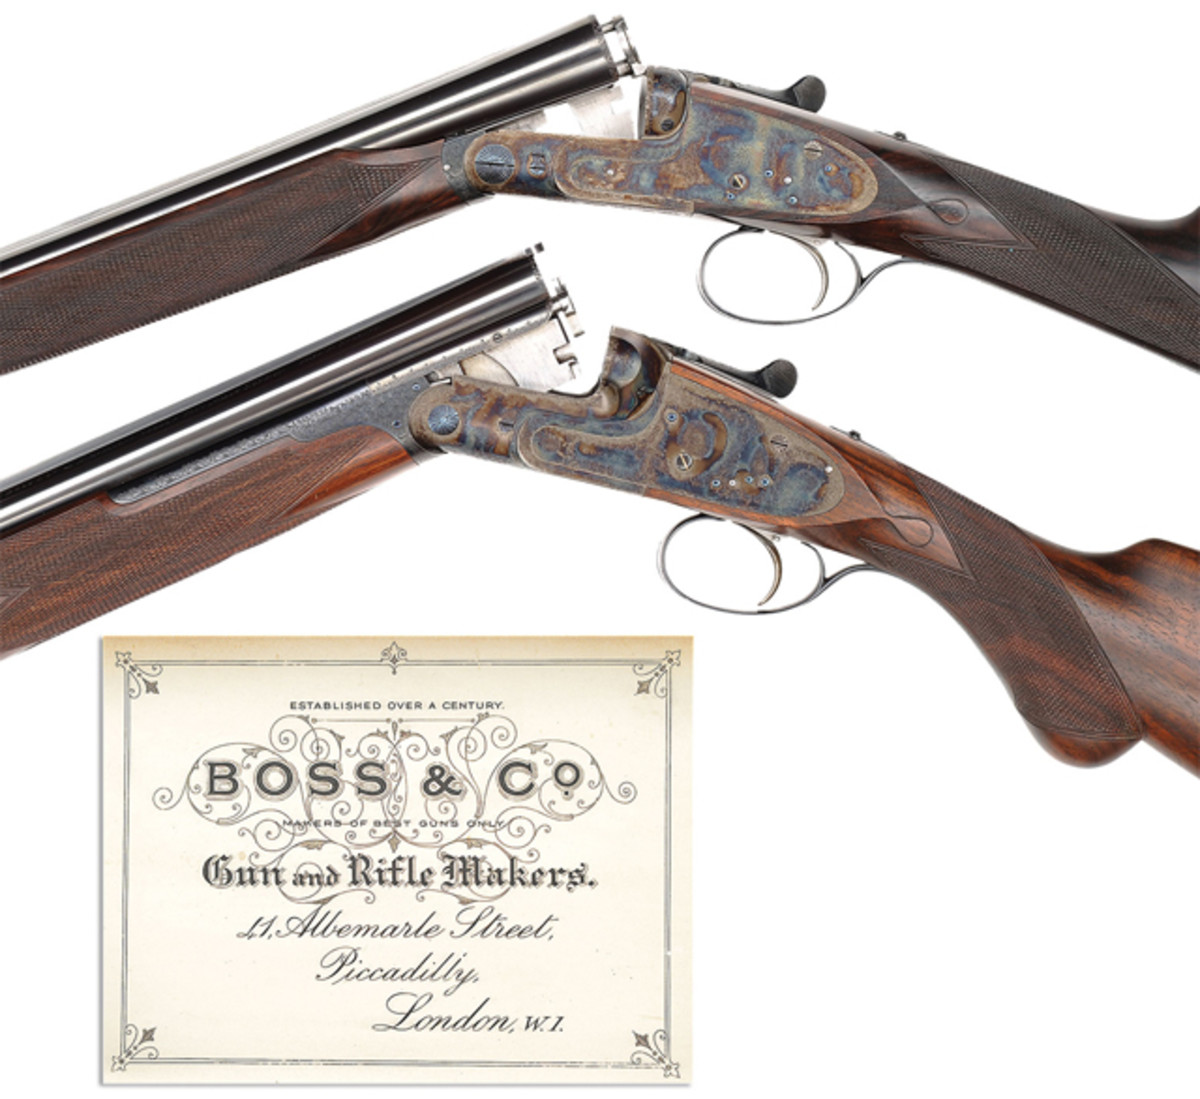 Extraordinary Consecutive SN Brace of Boss Best Quality 28 ga Game Guns (O/U & SxS) As new condition with motor case.